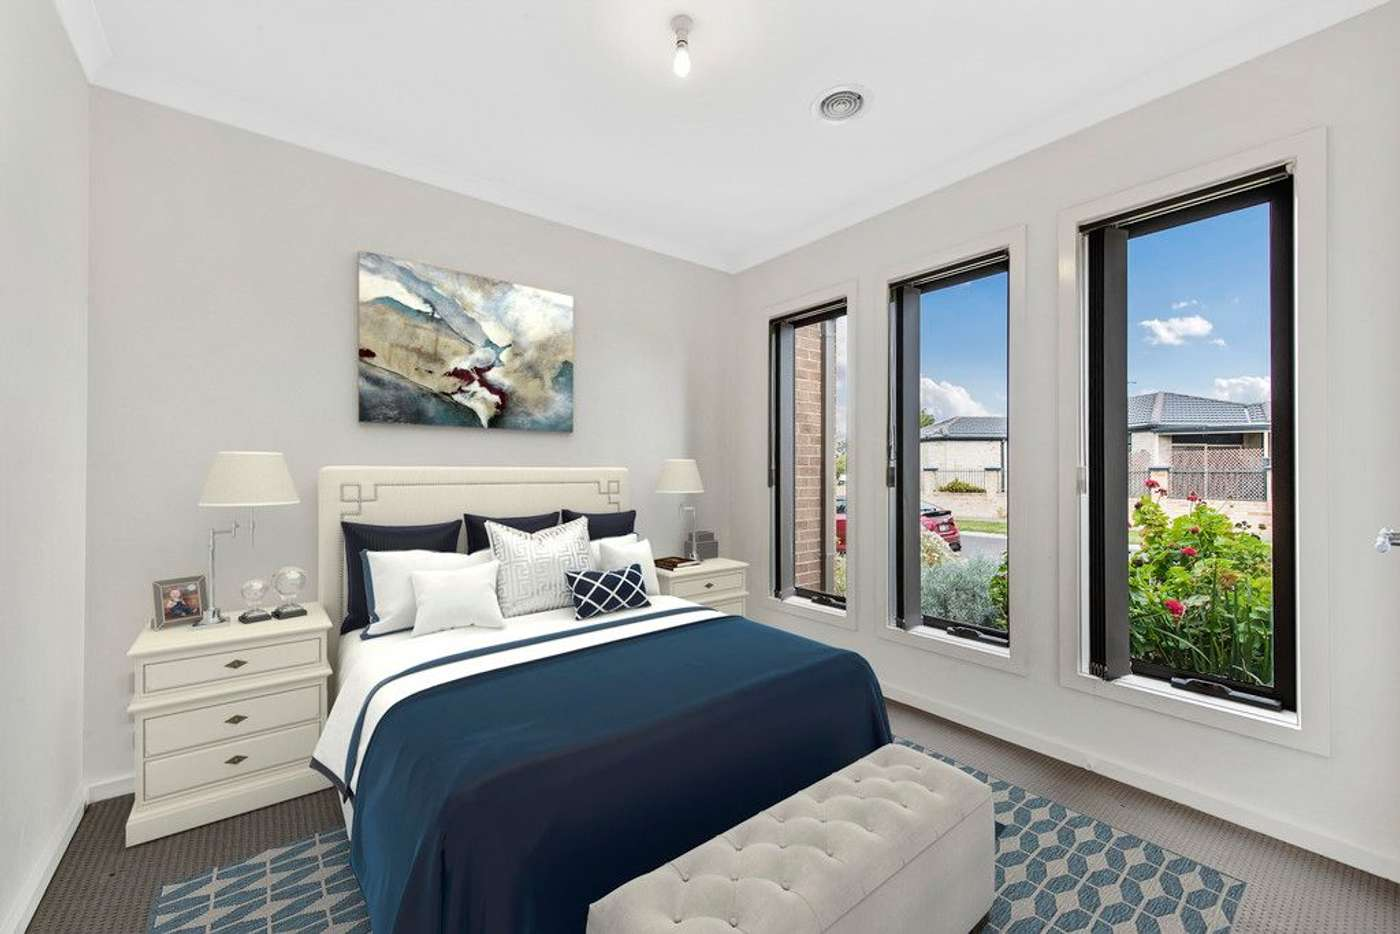 Sixth view of Homely house listing, 27 Silverleaf Drive, Melton VIC 3337